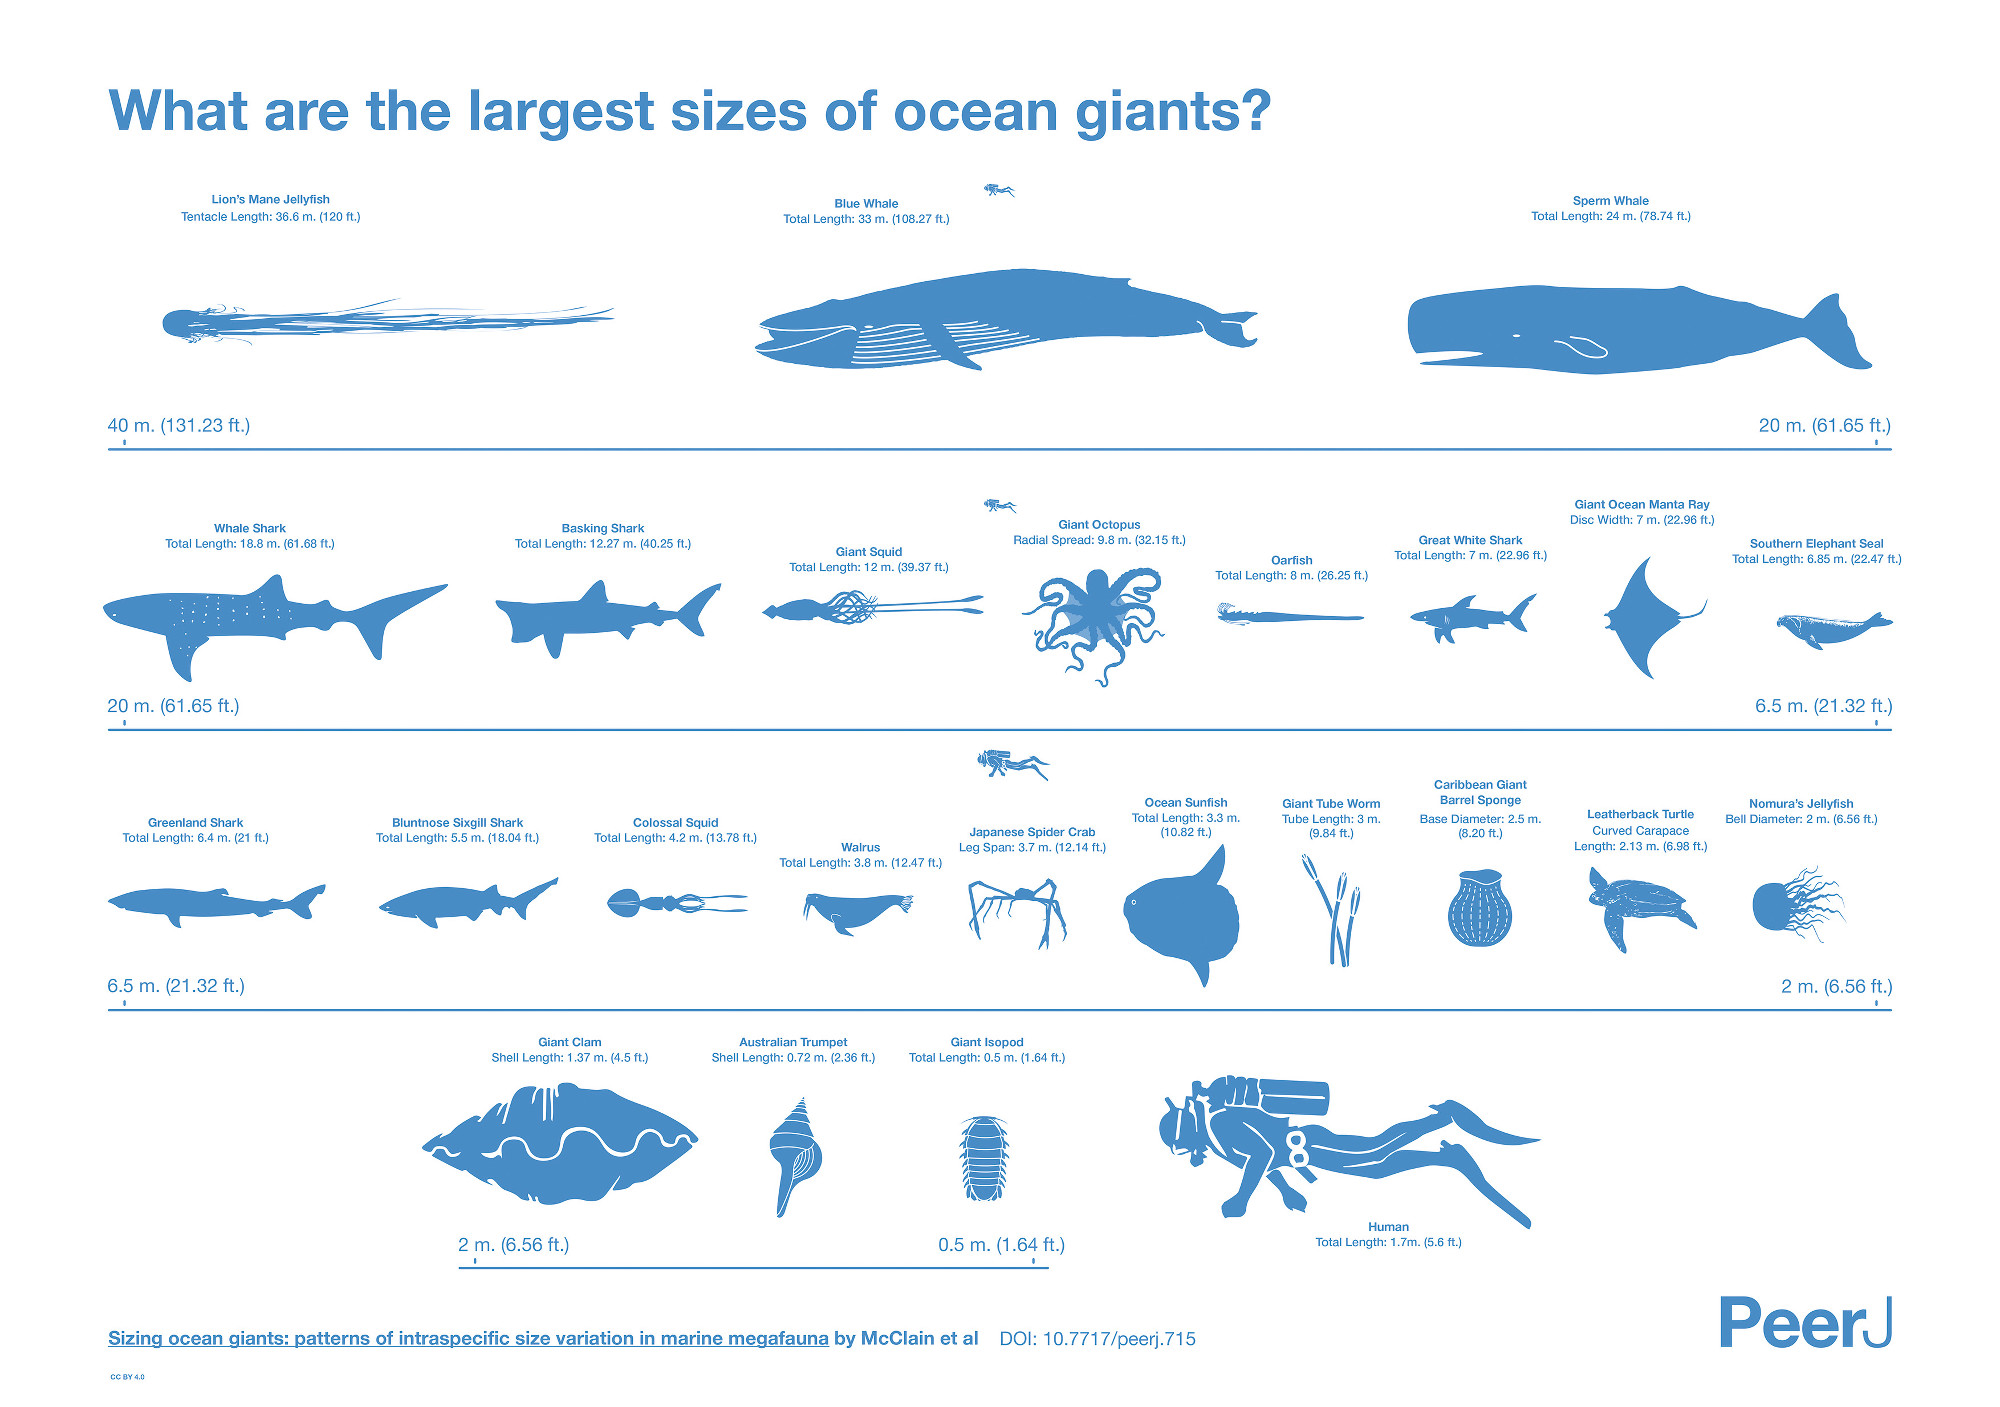 Sizing up the giants that live in the ocean